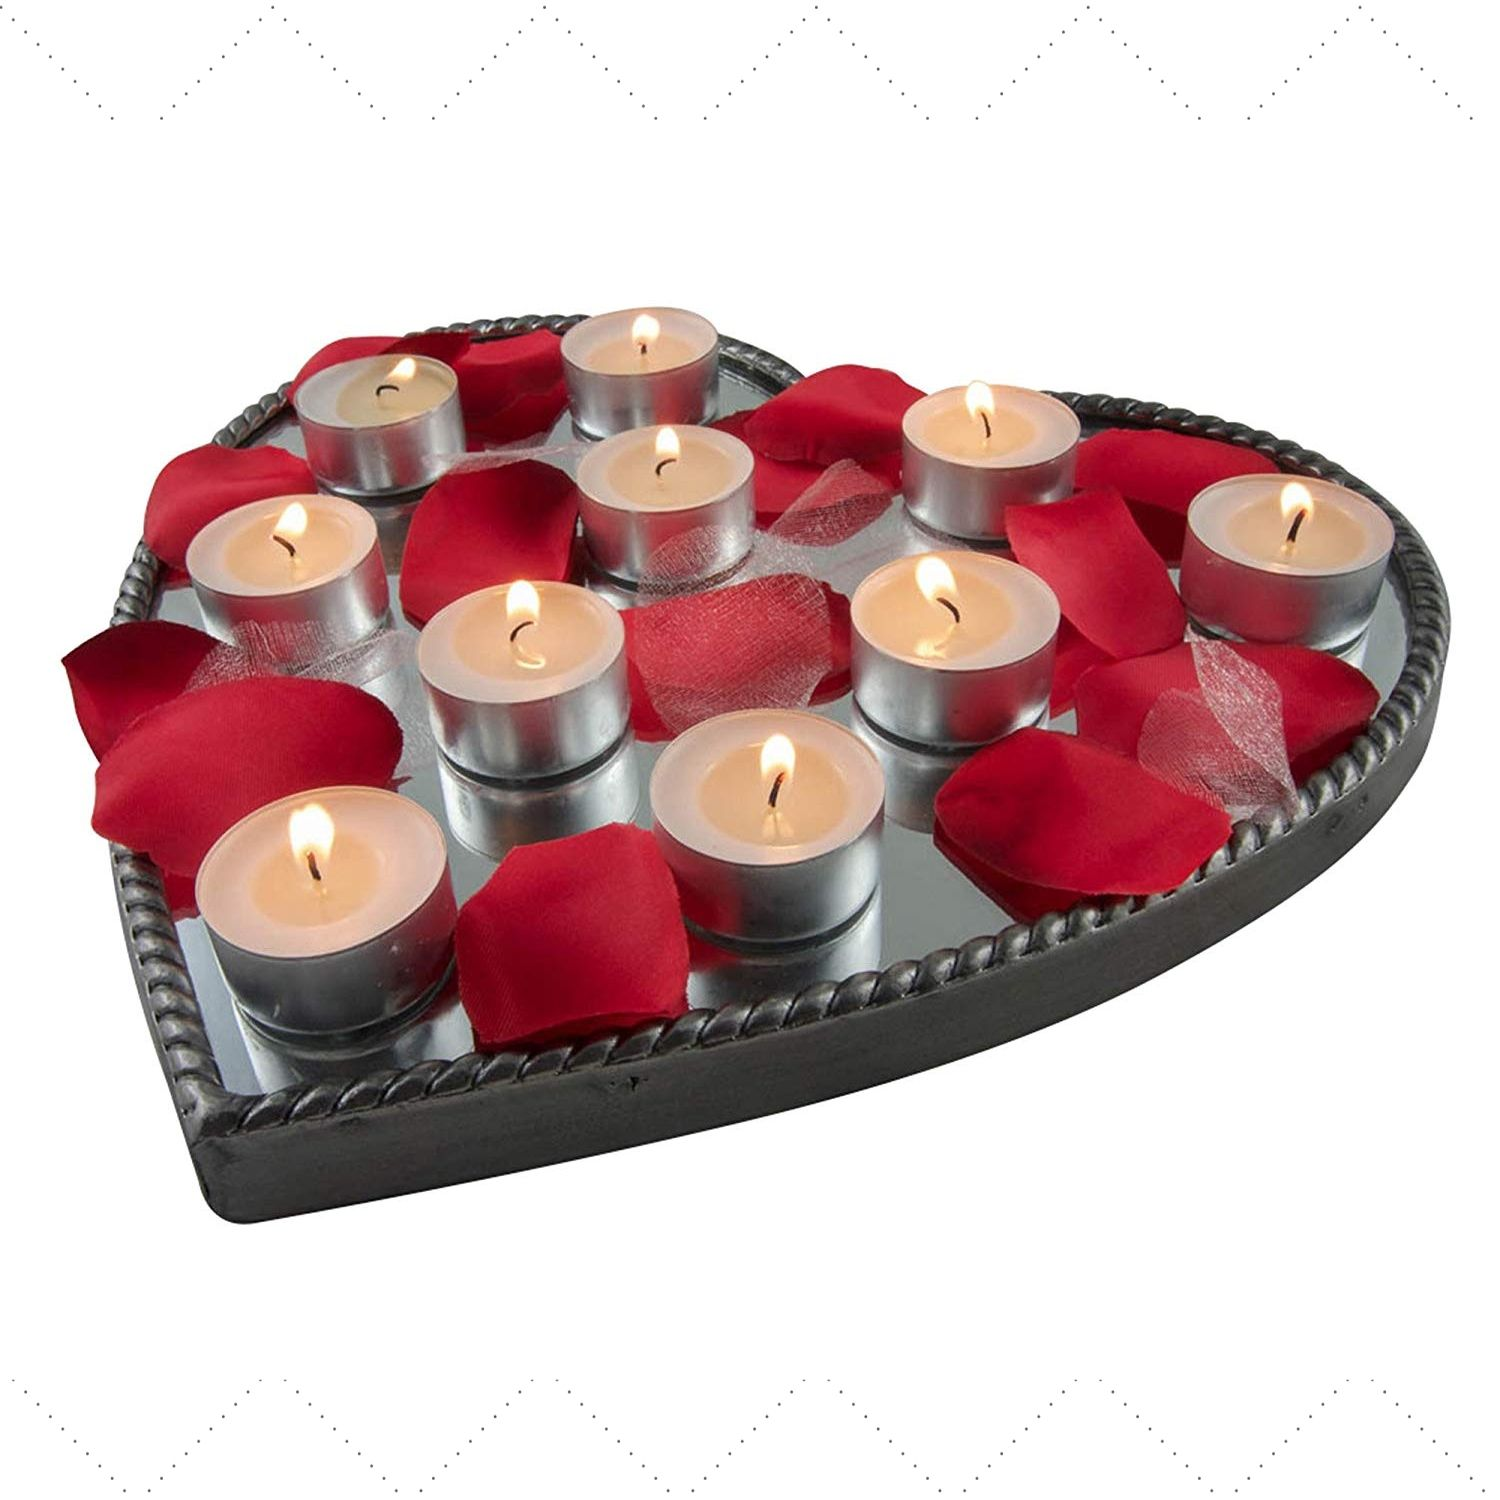 Tea Light Candles 6-7 Hour - Use for Floating Candle Centerpiece